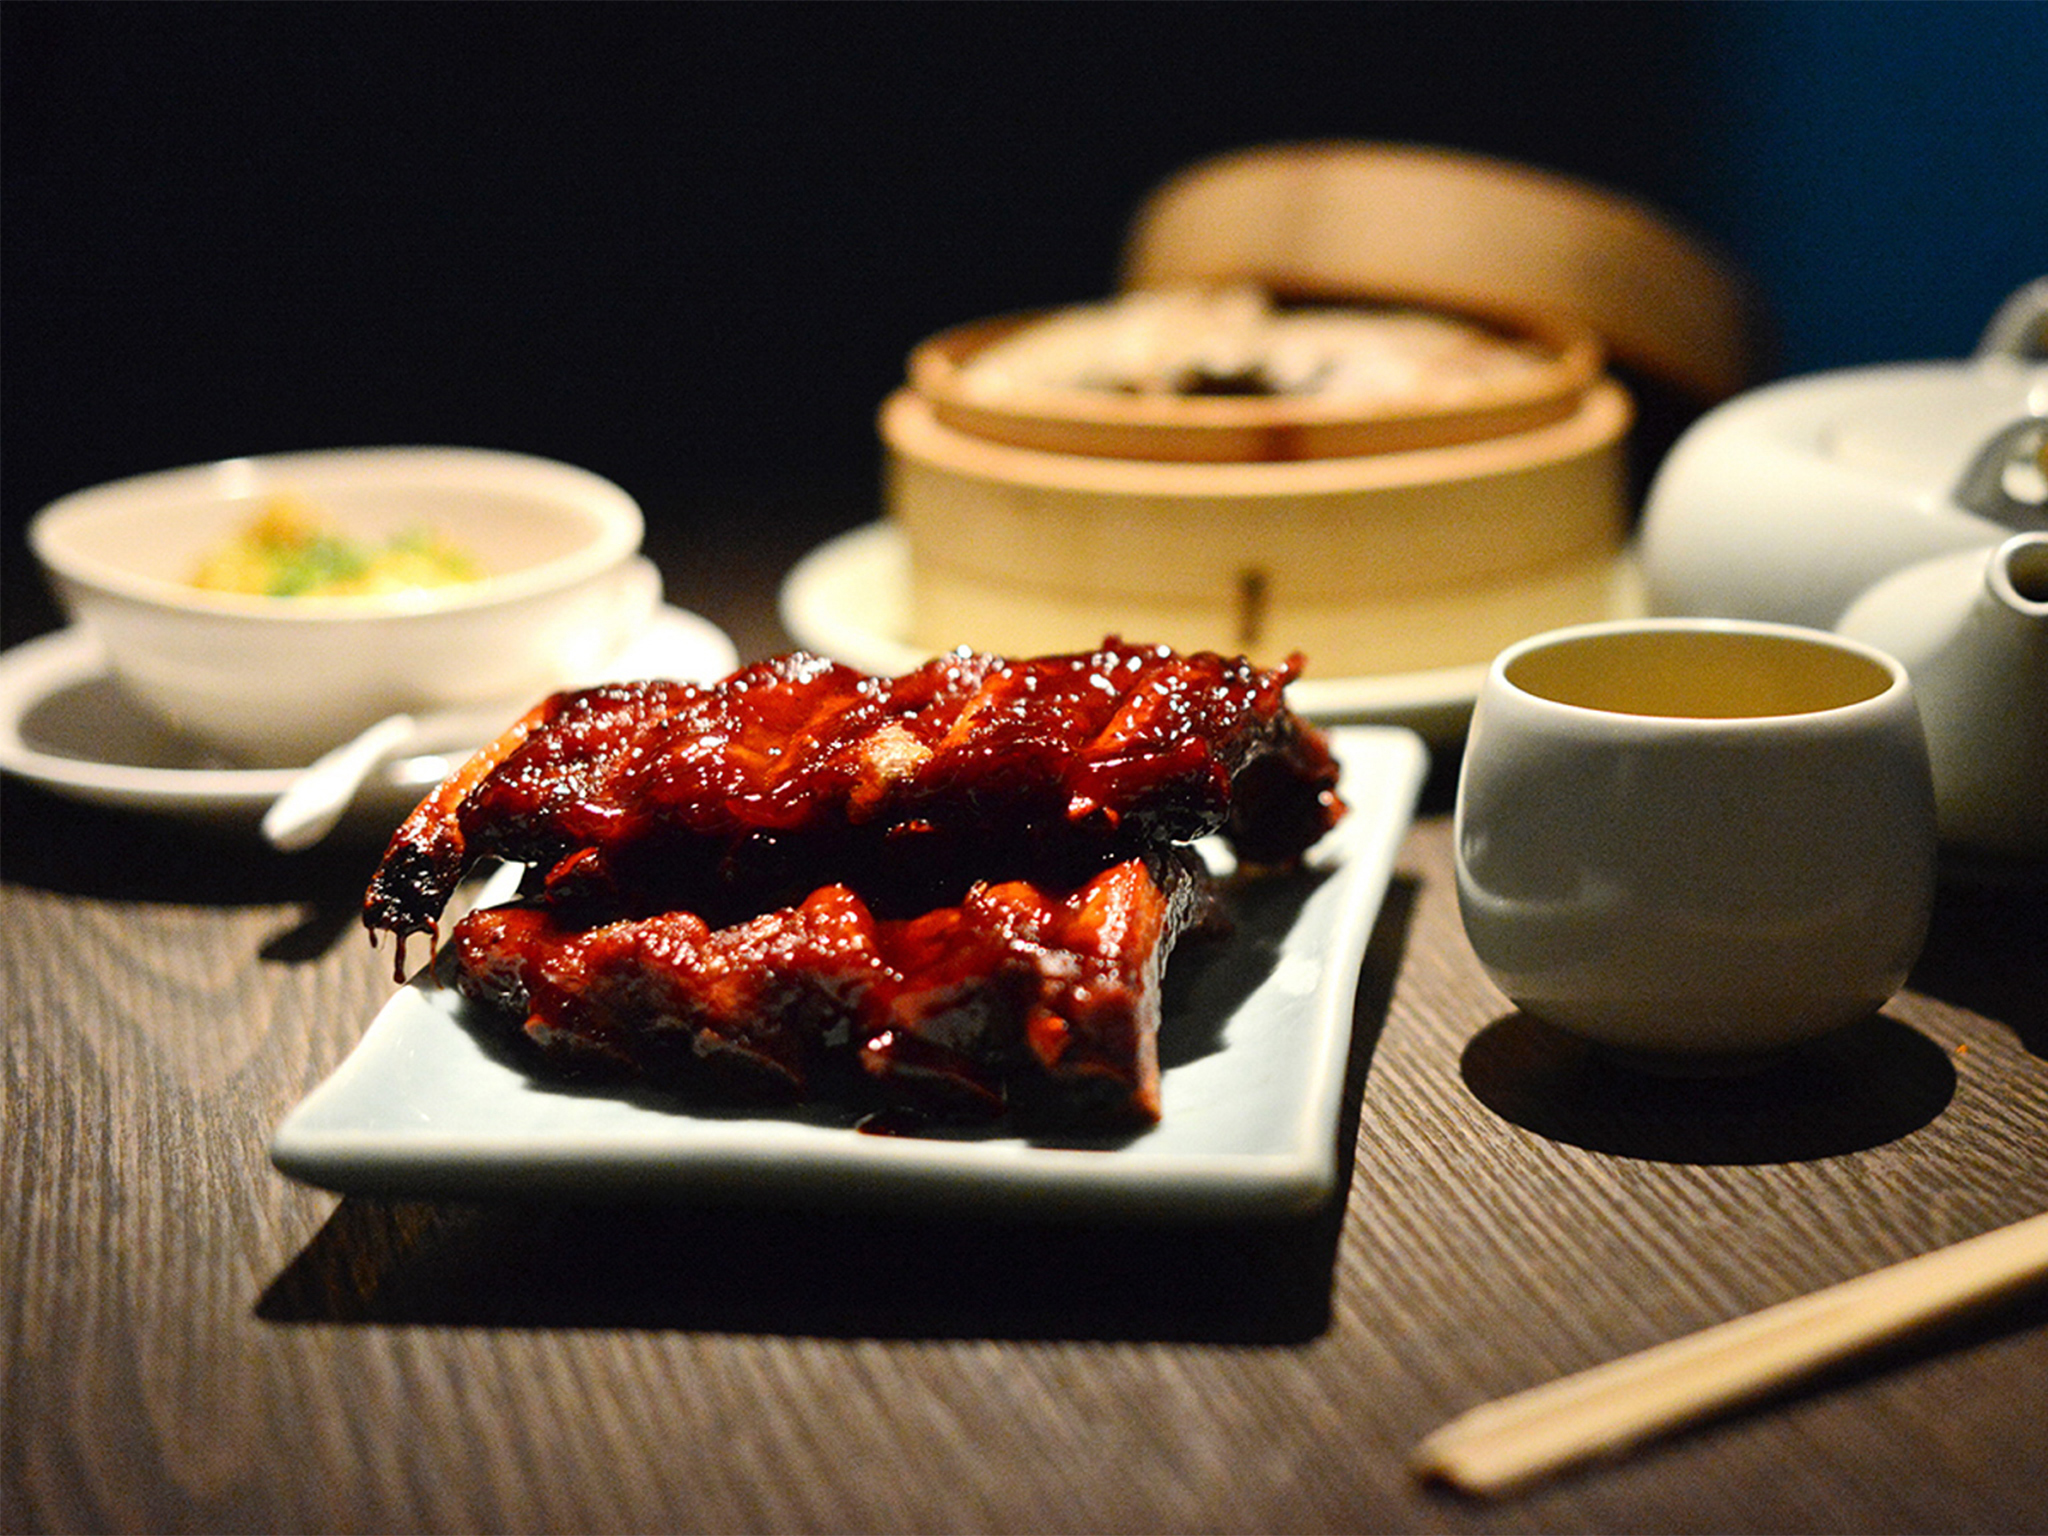 Yauatcha City grilled meat